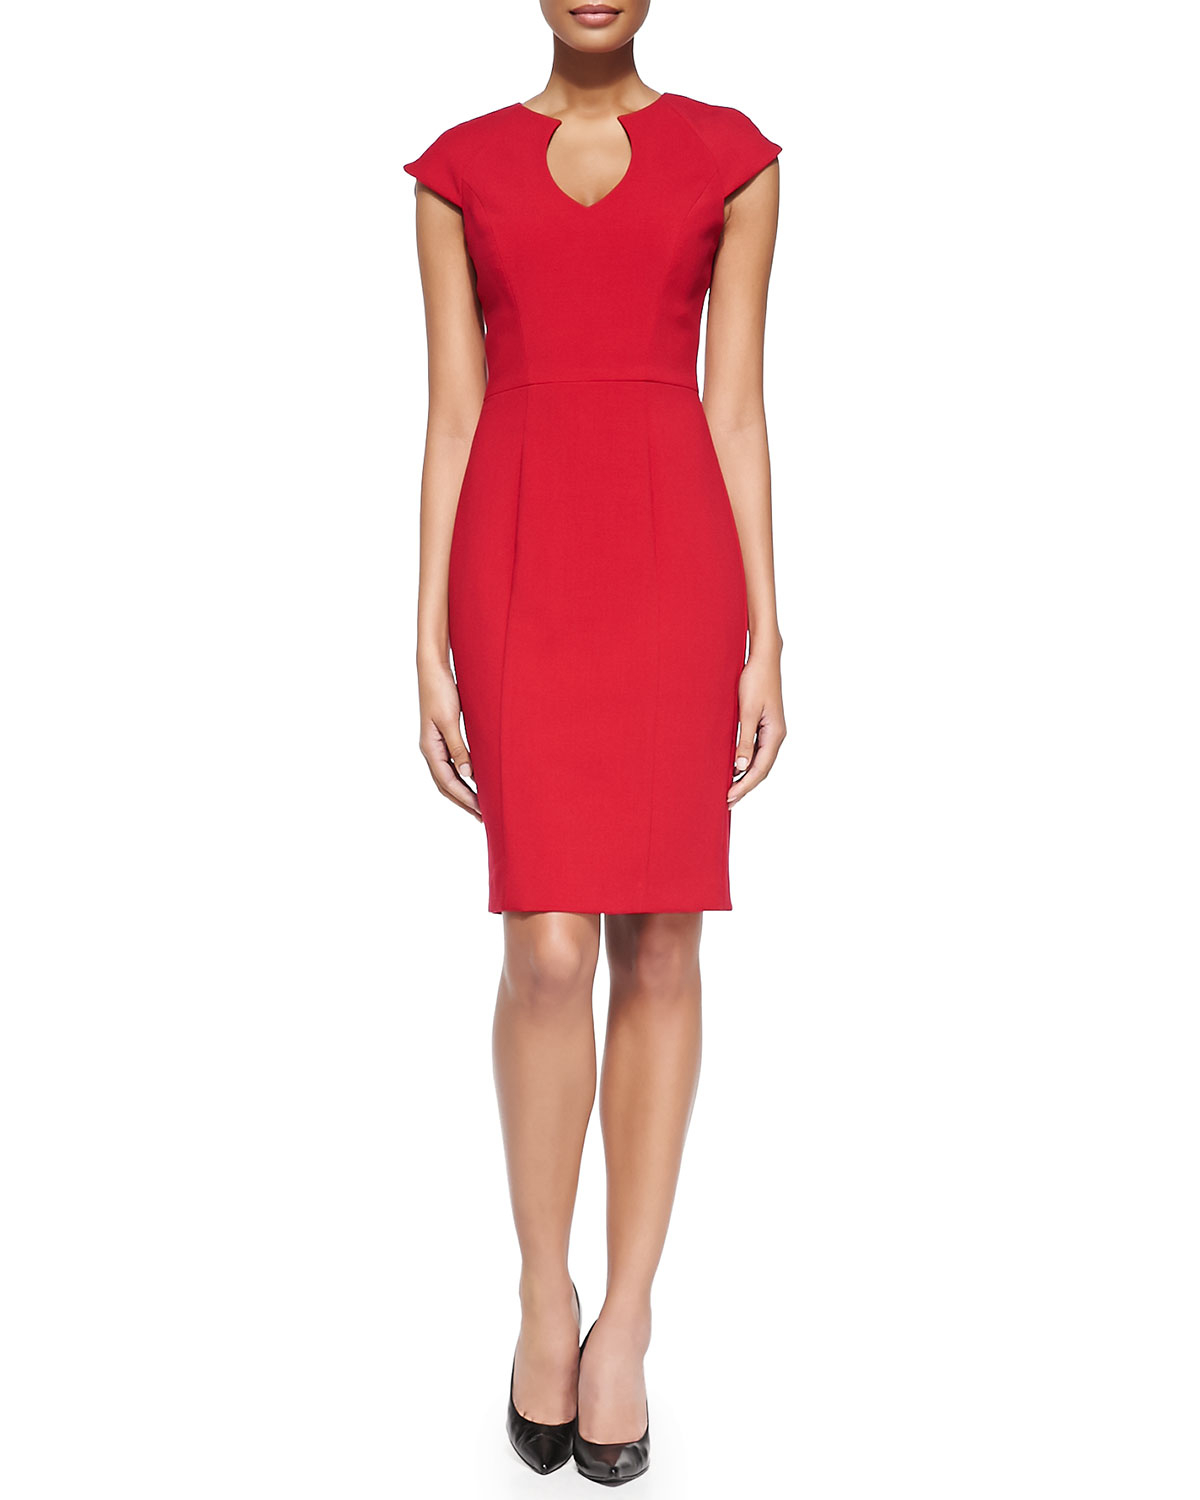 Black Halo fitted dress Cheap Sale 2018 Unisex brgHz